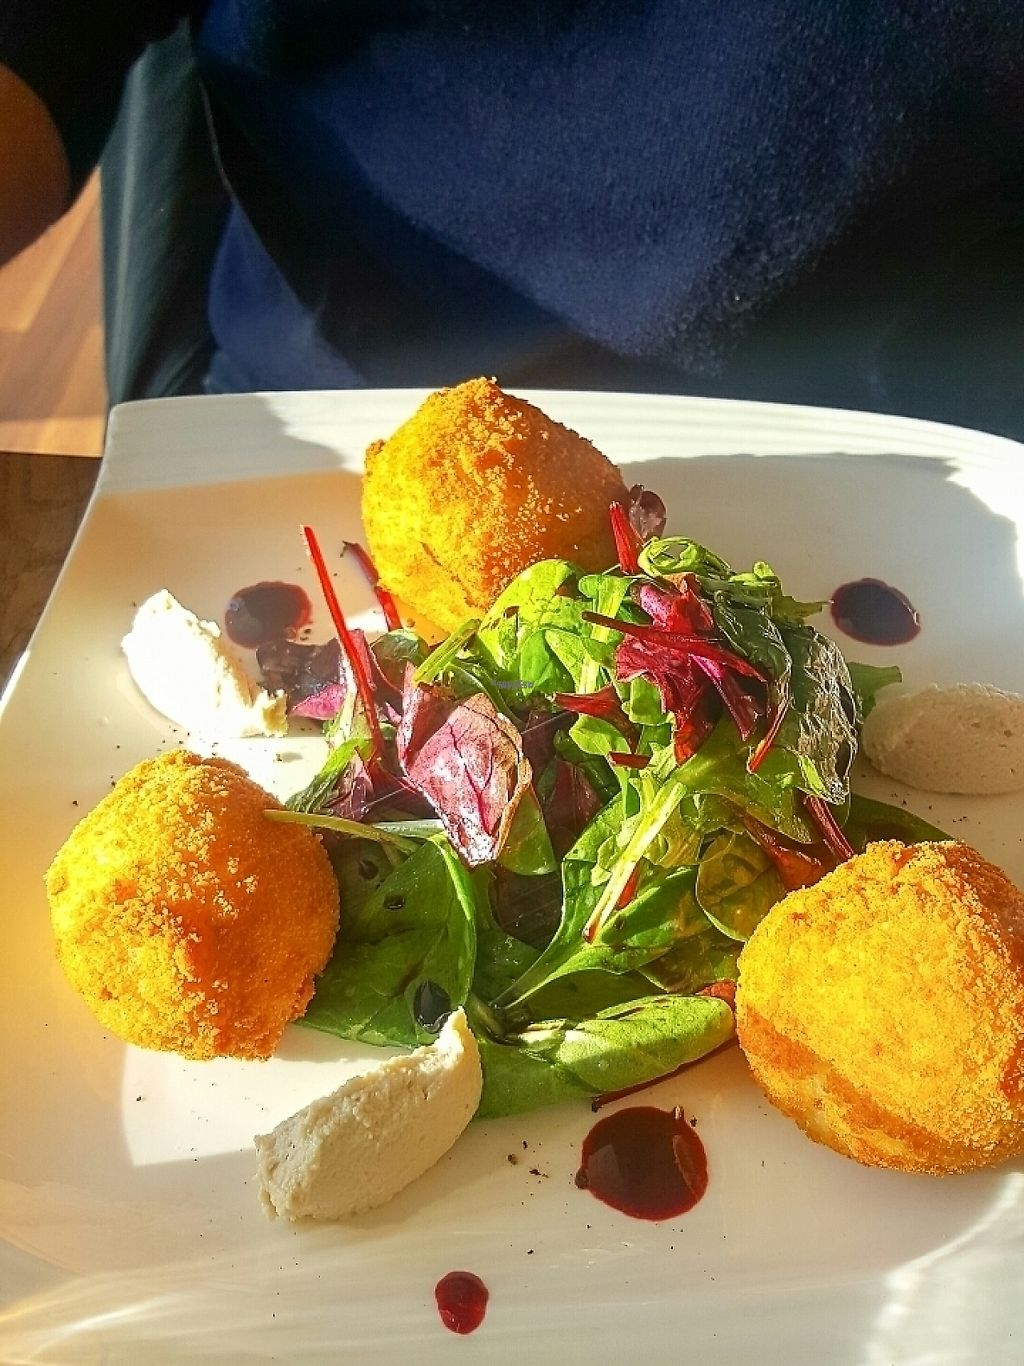 "Photo of The Vegan Eagle  by <a href=""/members/profile/veganverayo"">veganverayo</a> <br/>Risotto balls of the delicious special cheezy menue  <br/> April 14, 2017  - <a href='/contact/abuse/image/50251/247774'>Report</a>"